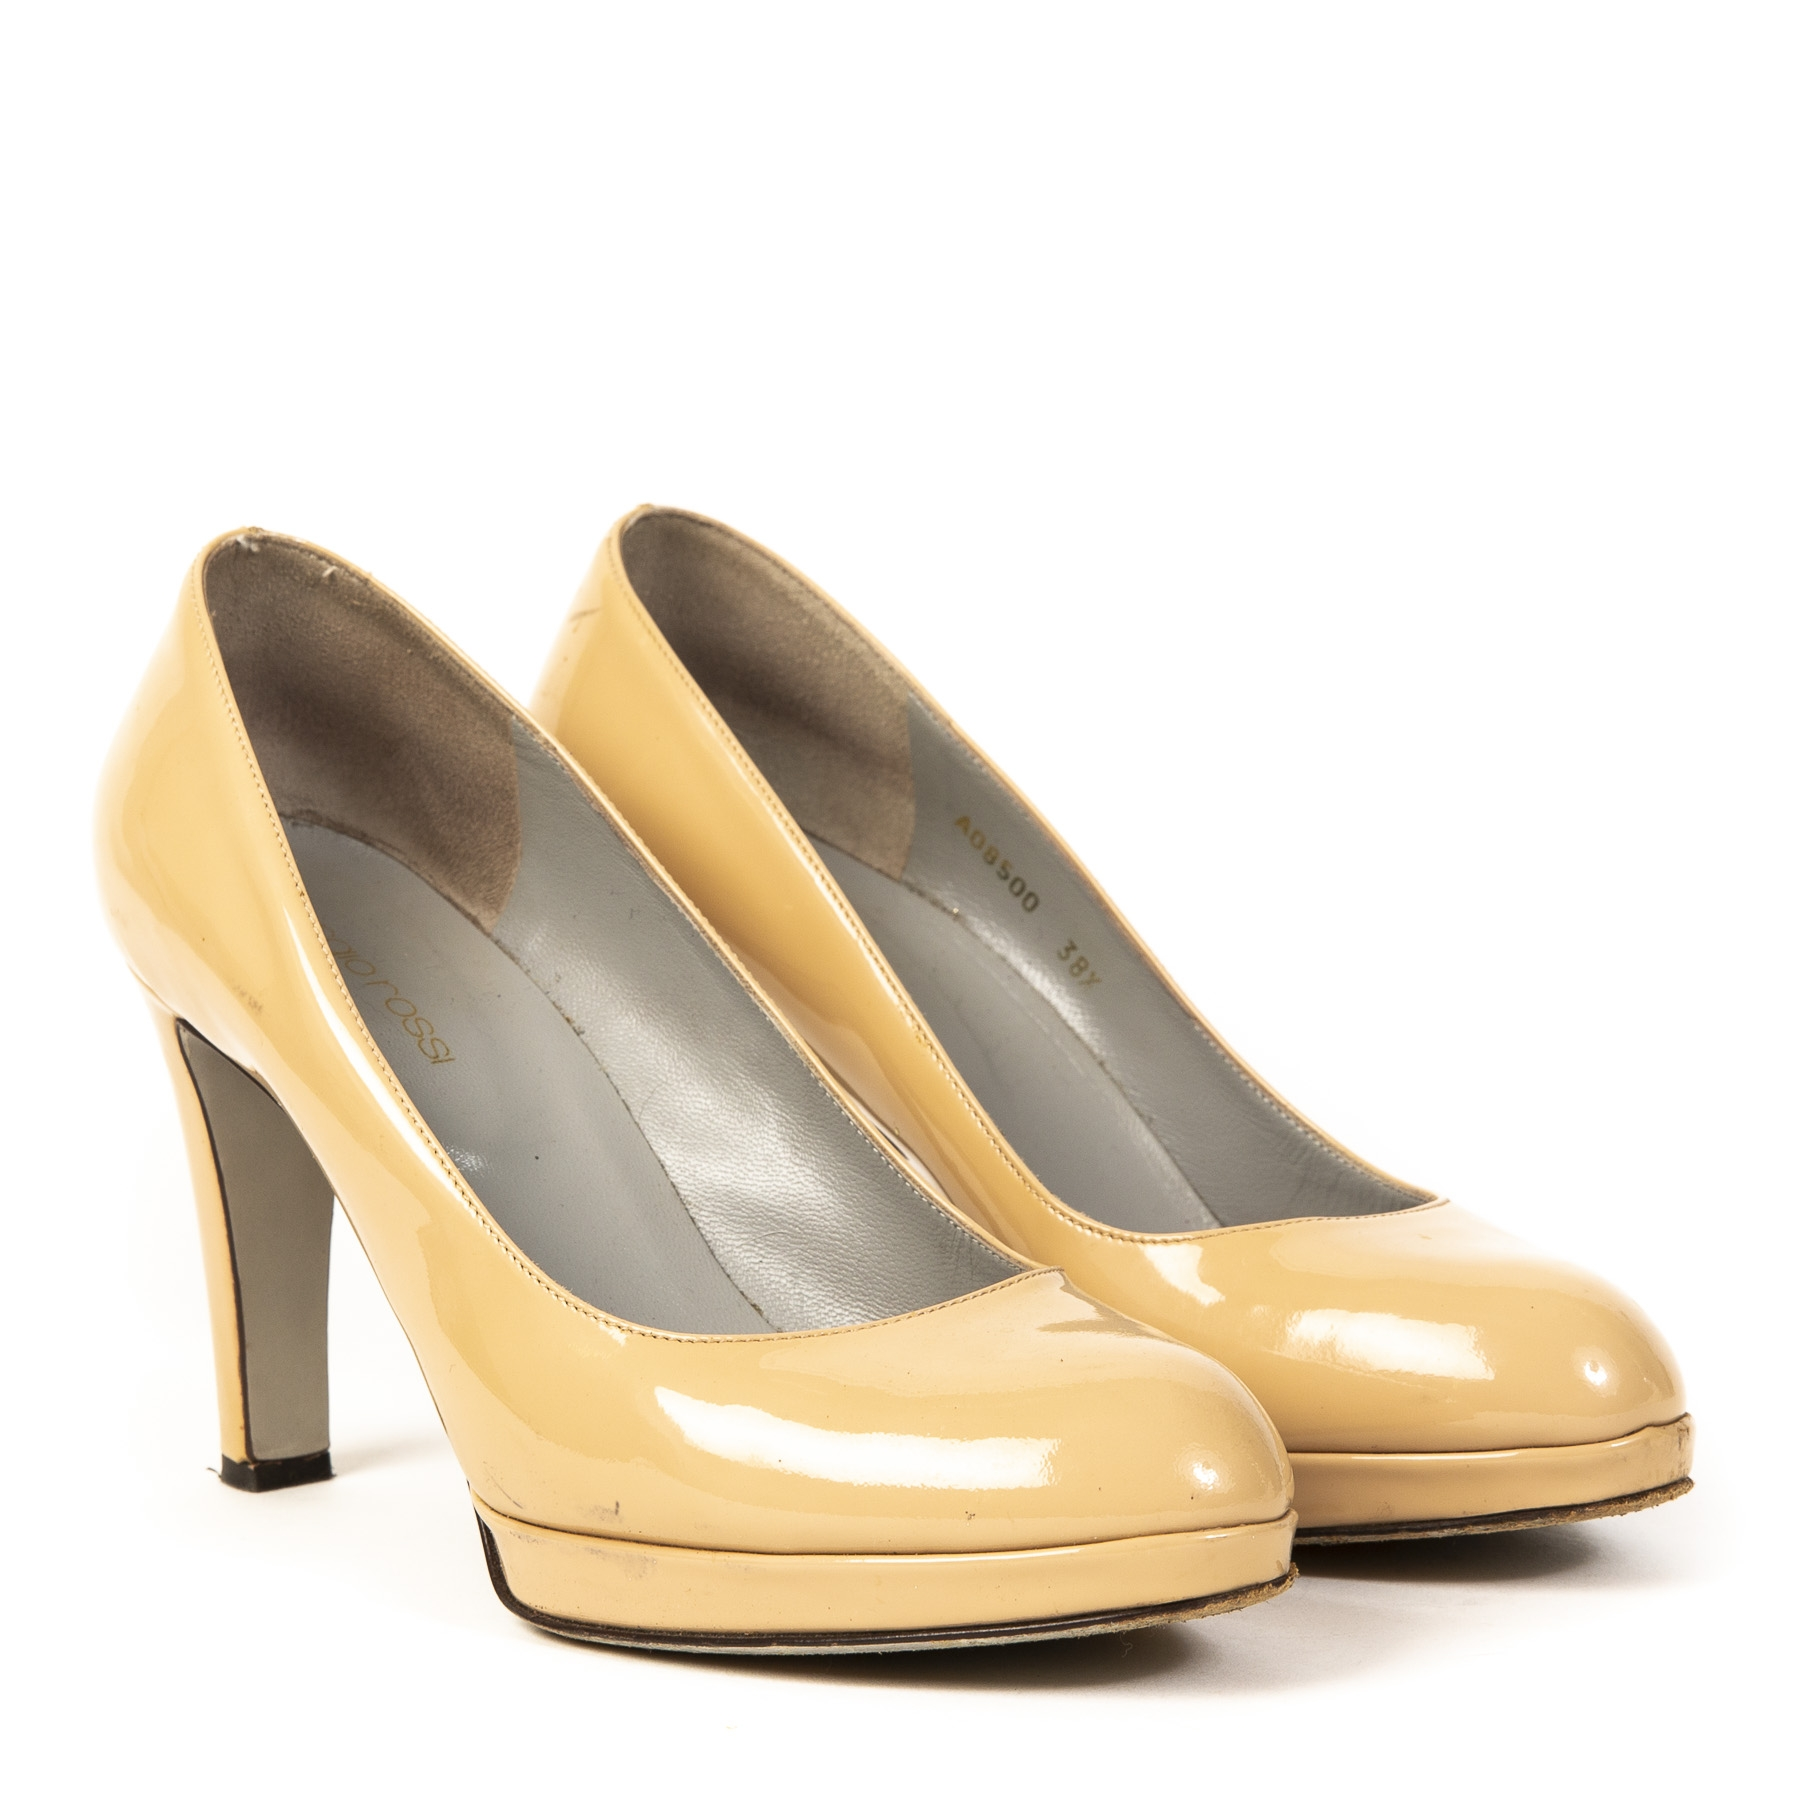 Authentic second-hand vintage Sergio Rossi Nude Pumps buy online webshop LabelLOV